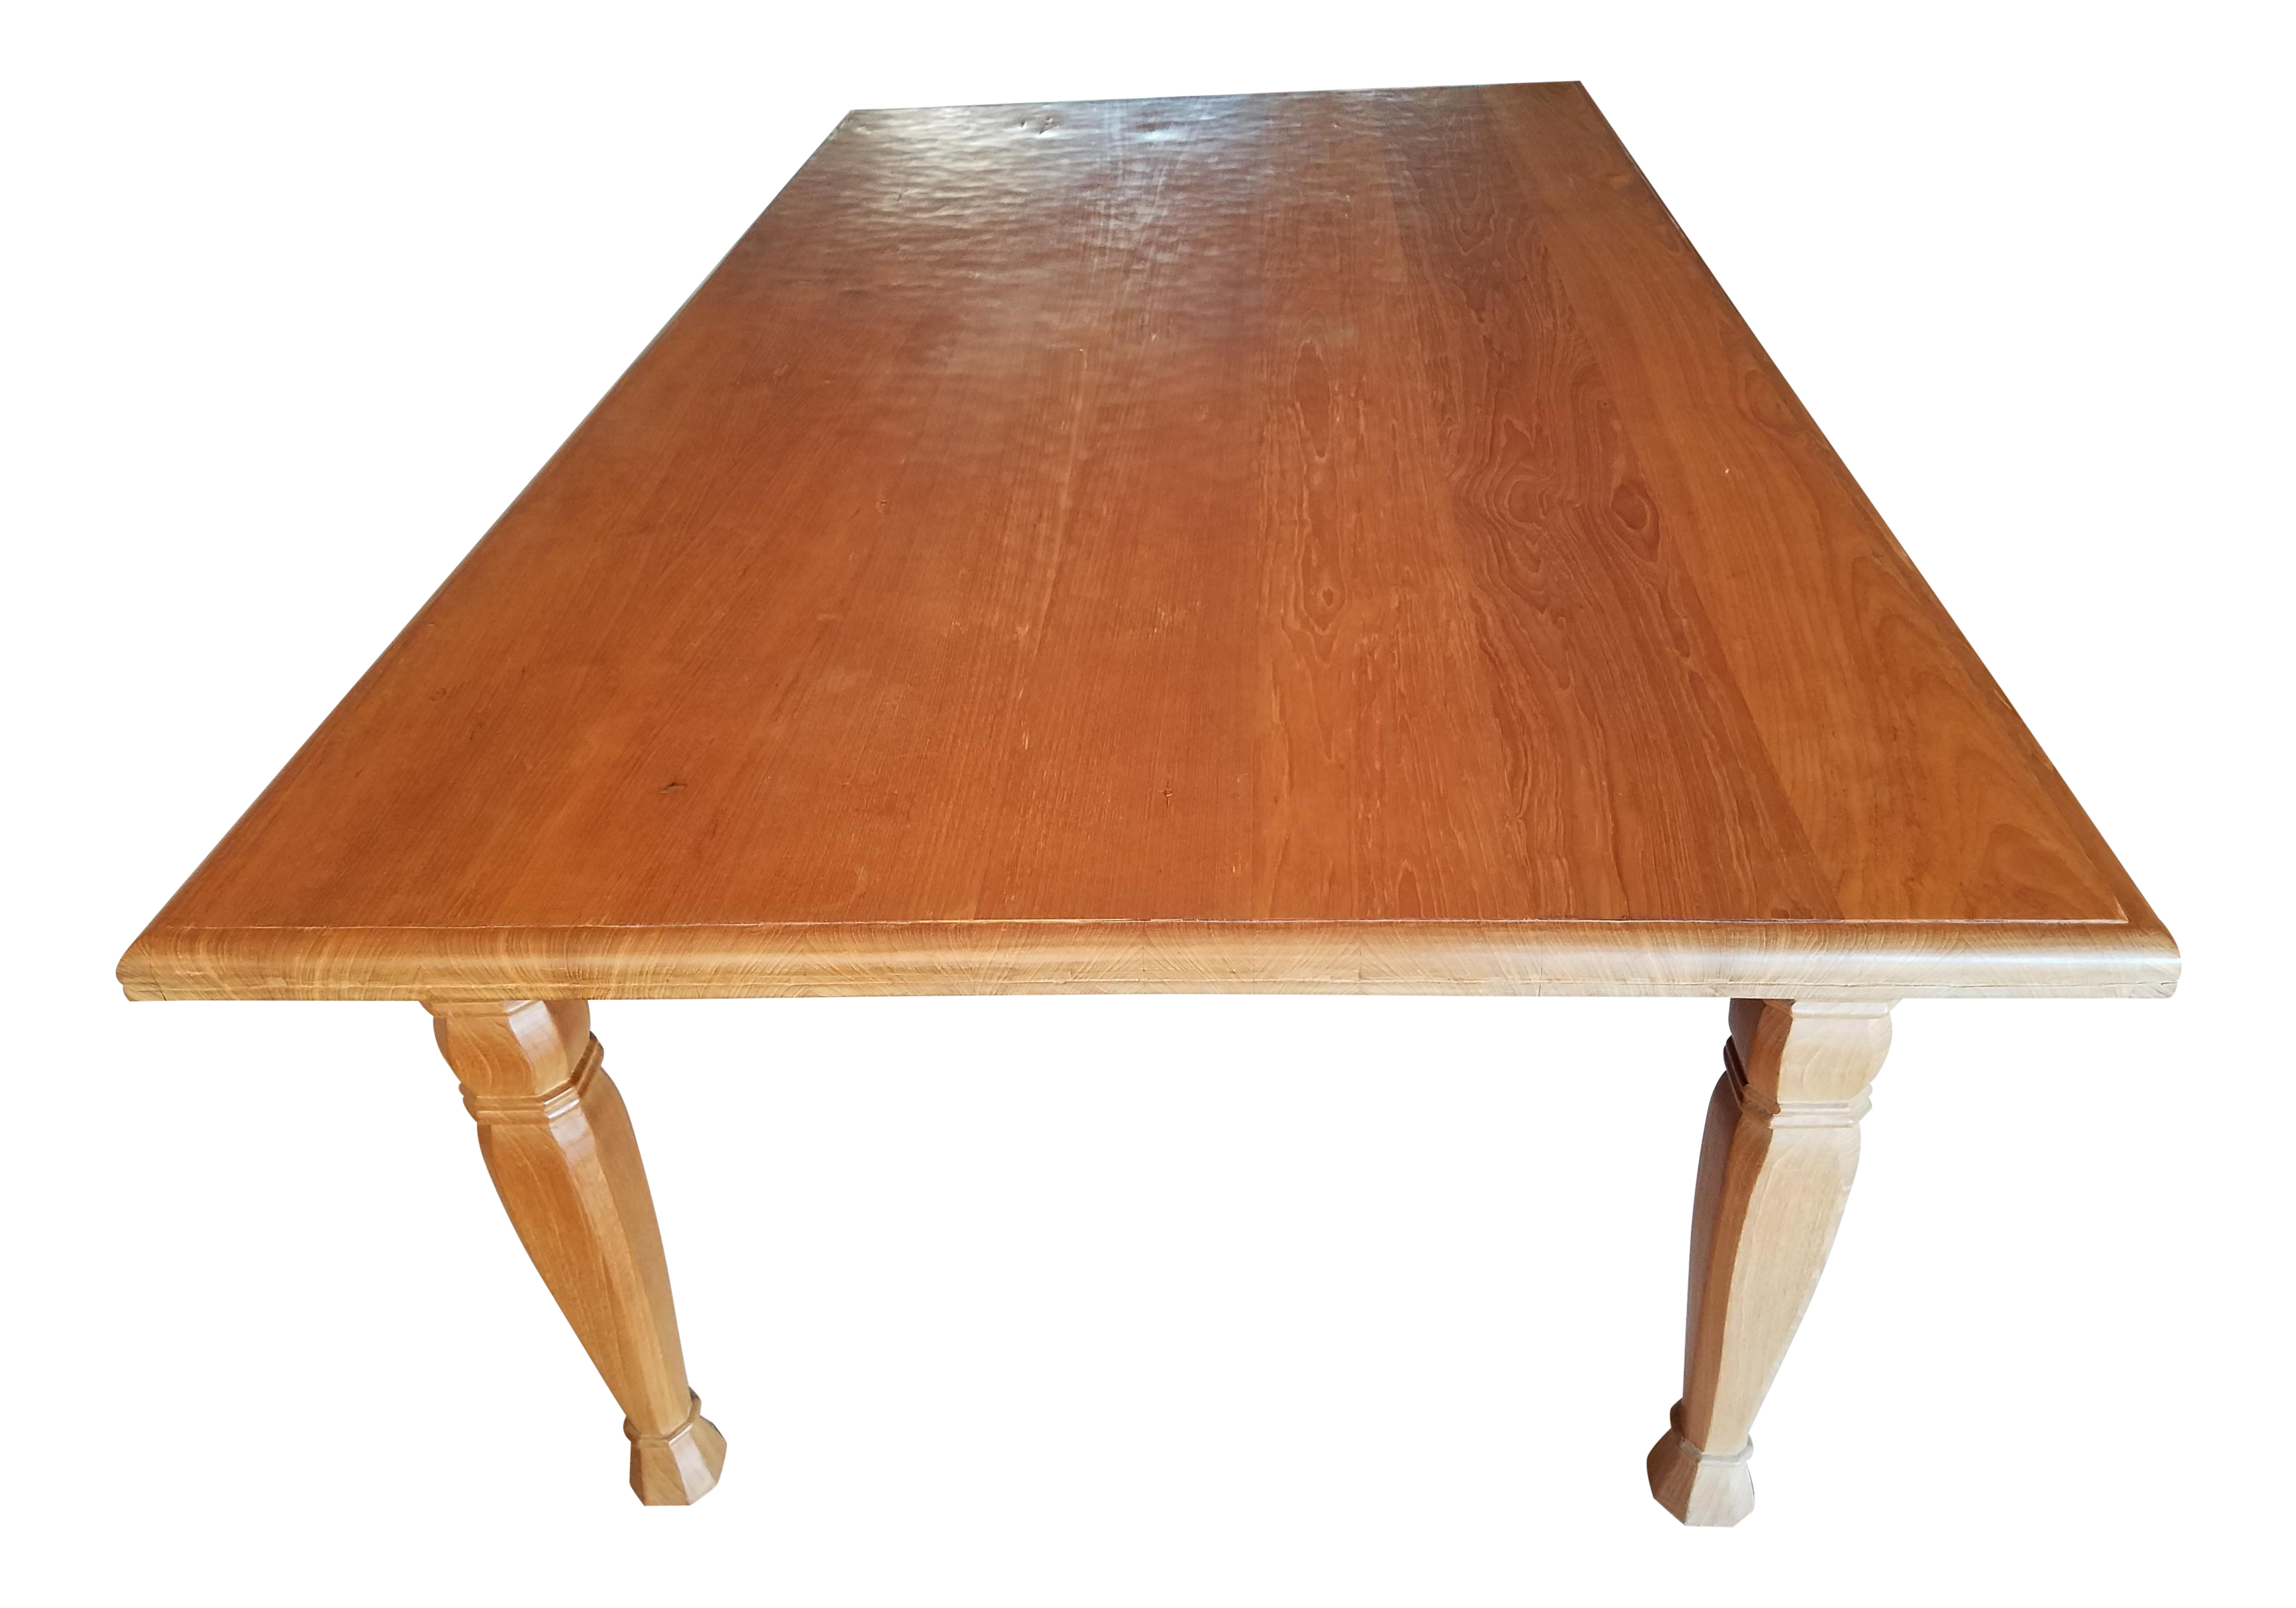 Indonesian Solid Wood Dining Table Chairish : 294f2023 4832 4ea9 8db5 46d7e4aba1edaspectfitampwidth640ampheight640 from www.chairish.com size 640 x 640 jpeg 26kB